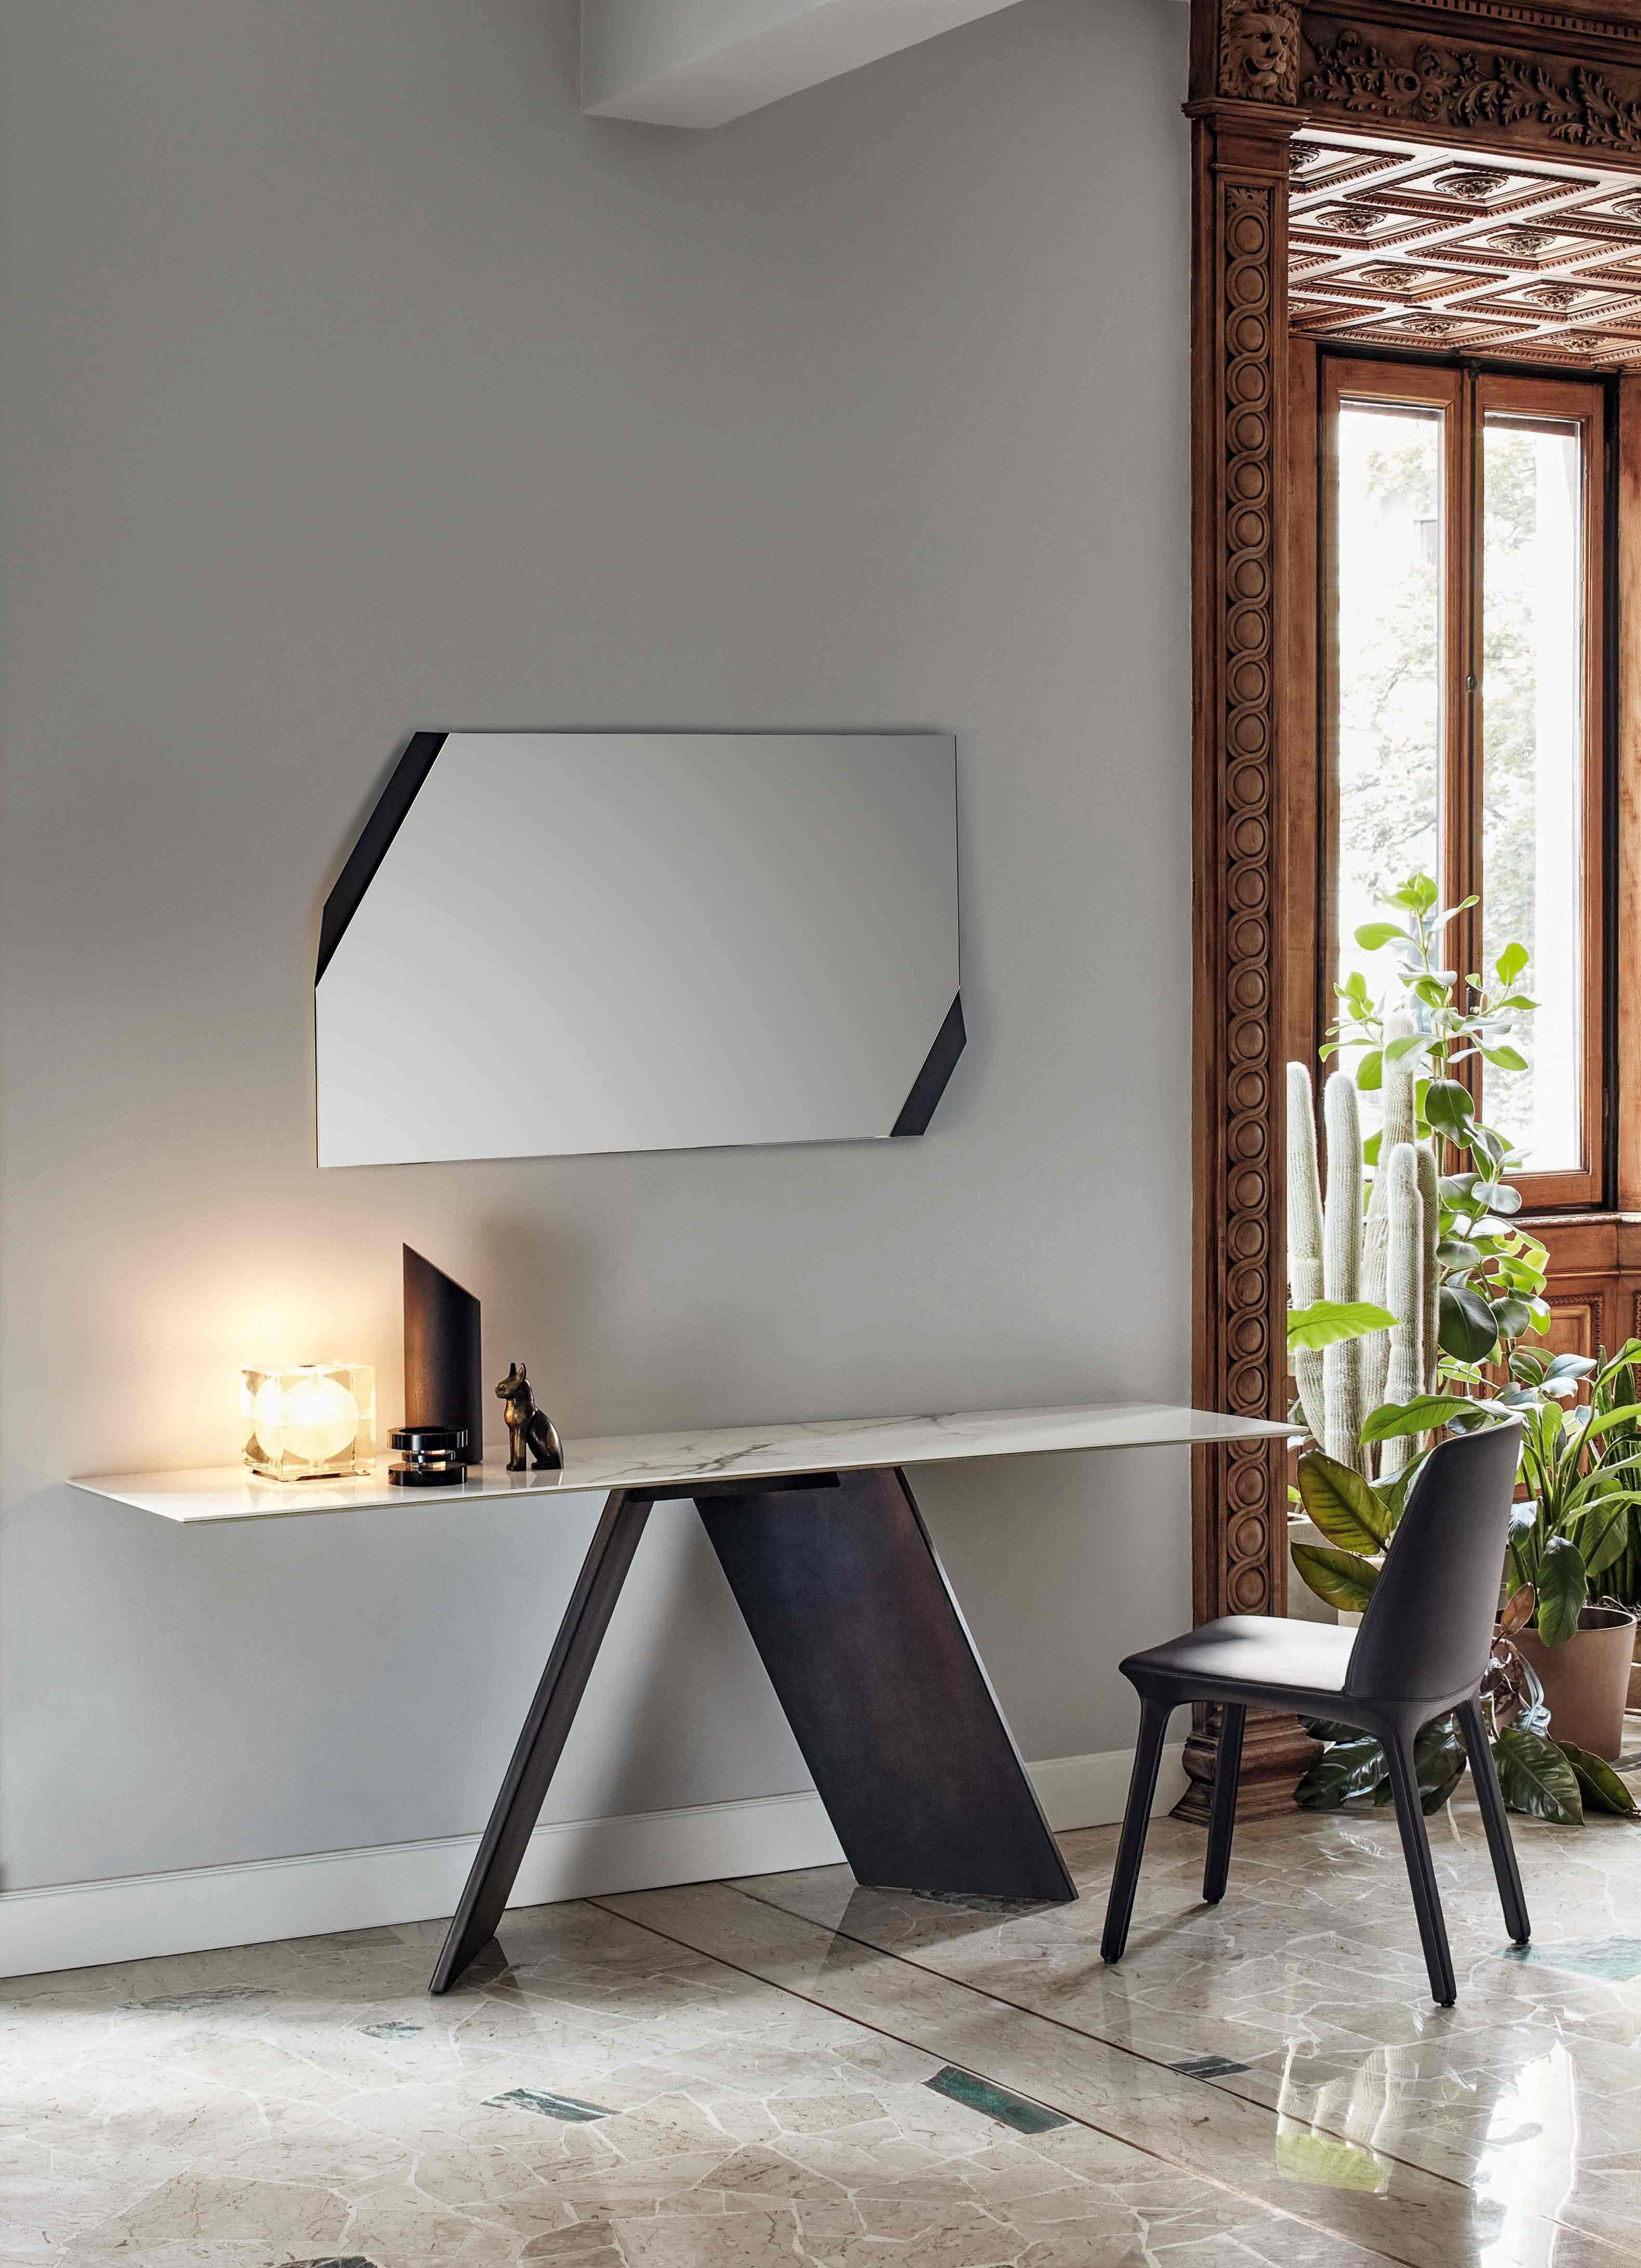 AX Console U0026 Mirror By Bonaldo, Gino Carollo Design. Polish Agent Of Bonaldo:  Www.alicjabarcicka.pl #interiordesign #italiandesign #bonaldo #furniture